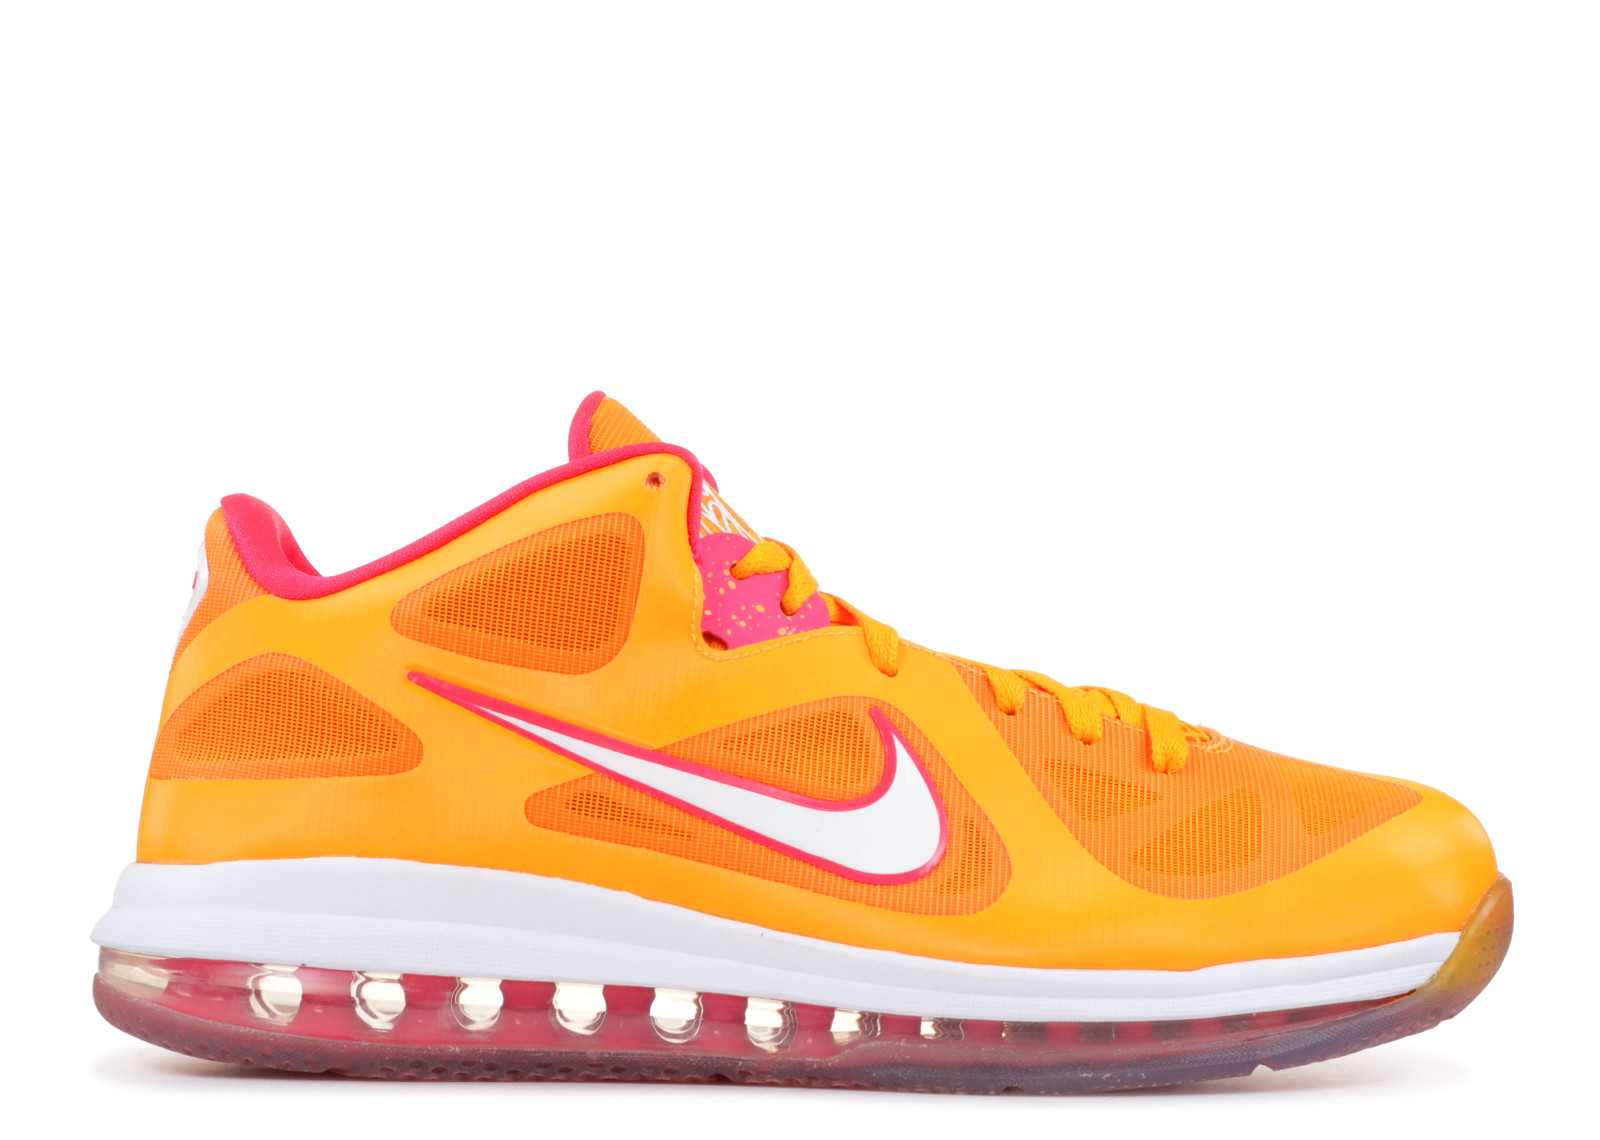 free shipping 36157 dc01c Lebron 9 Low  Floridian  - 510811-800 - Size 10